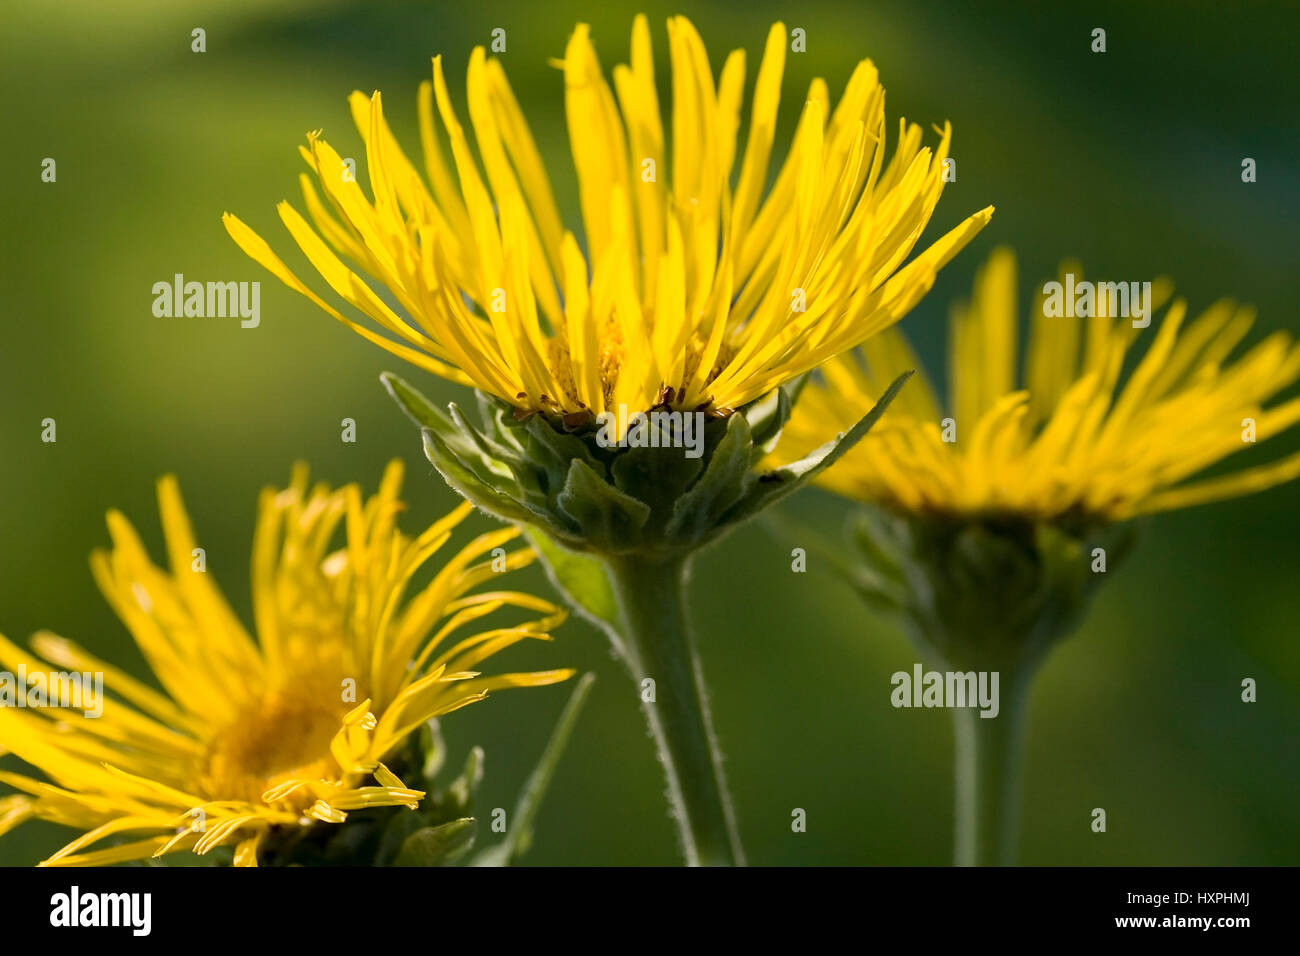 Real Alant (Inula helenium) is a plant from the family of the composites., Echter Alant (Inula helenium) ist eine - Stock Image